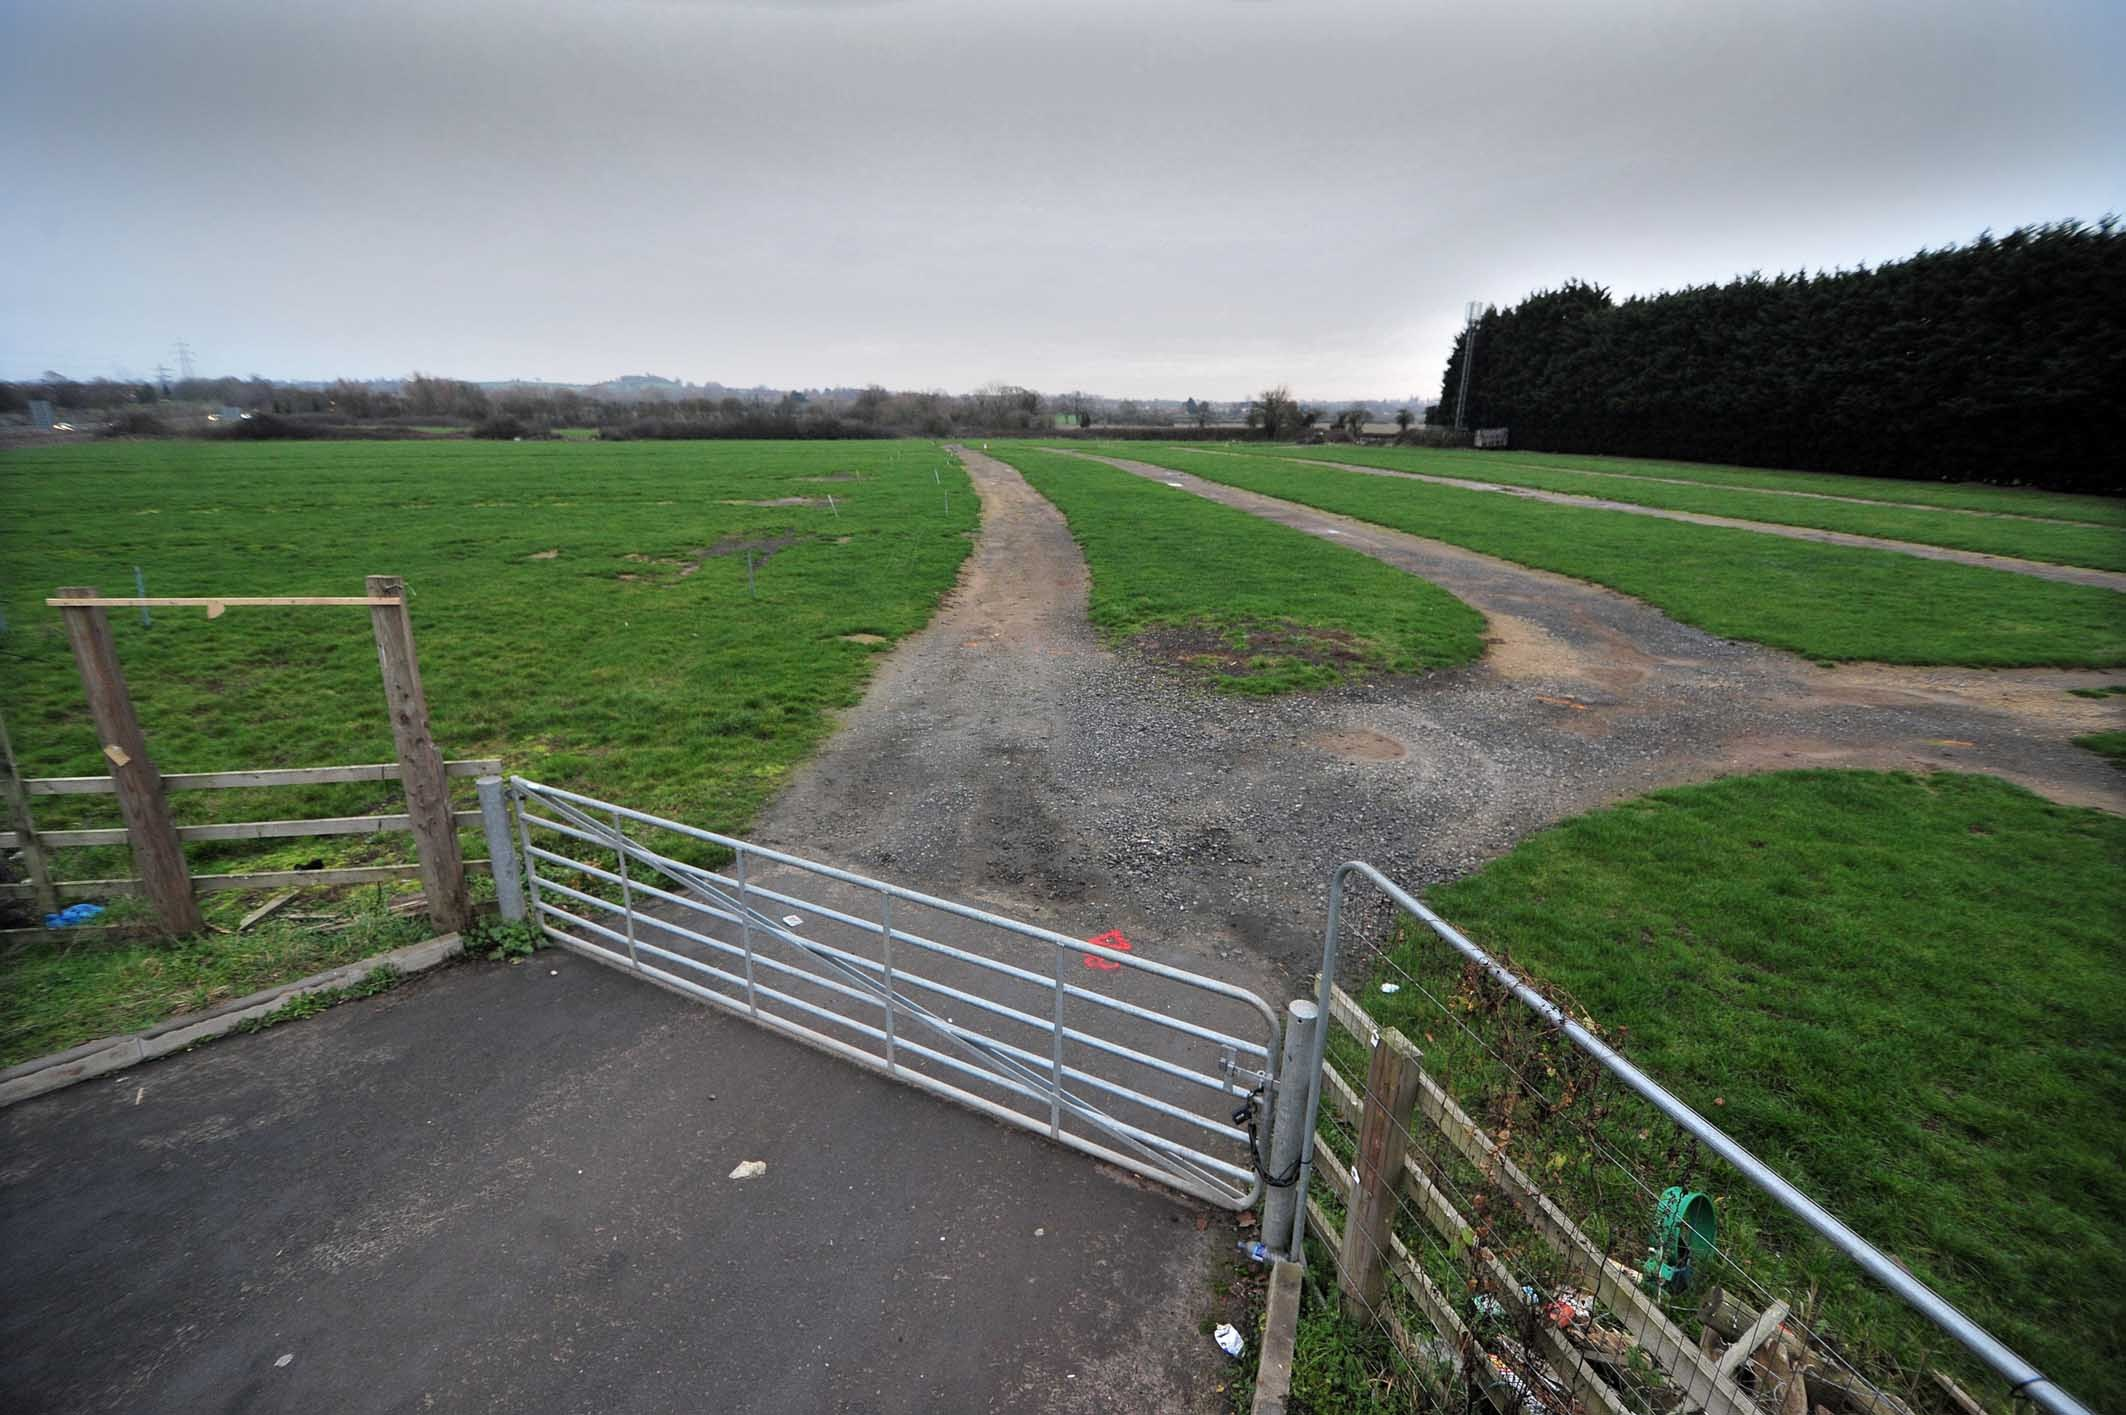 SALE: An offer has been accepted for the field near the M5 where the car boot sale used to take place